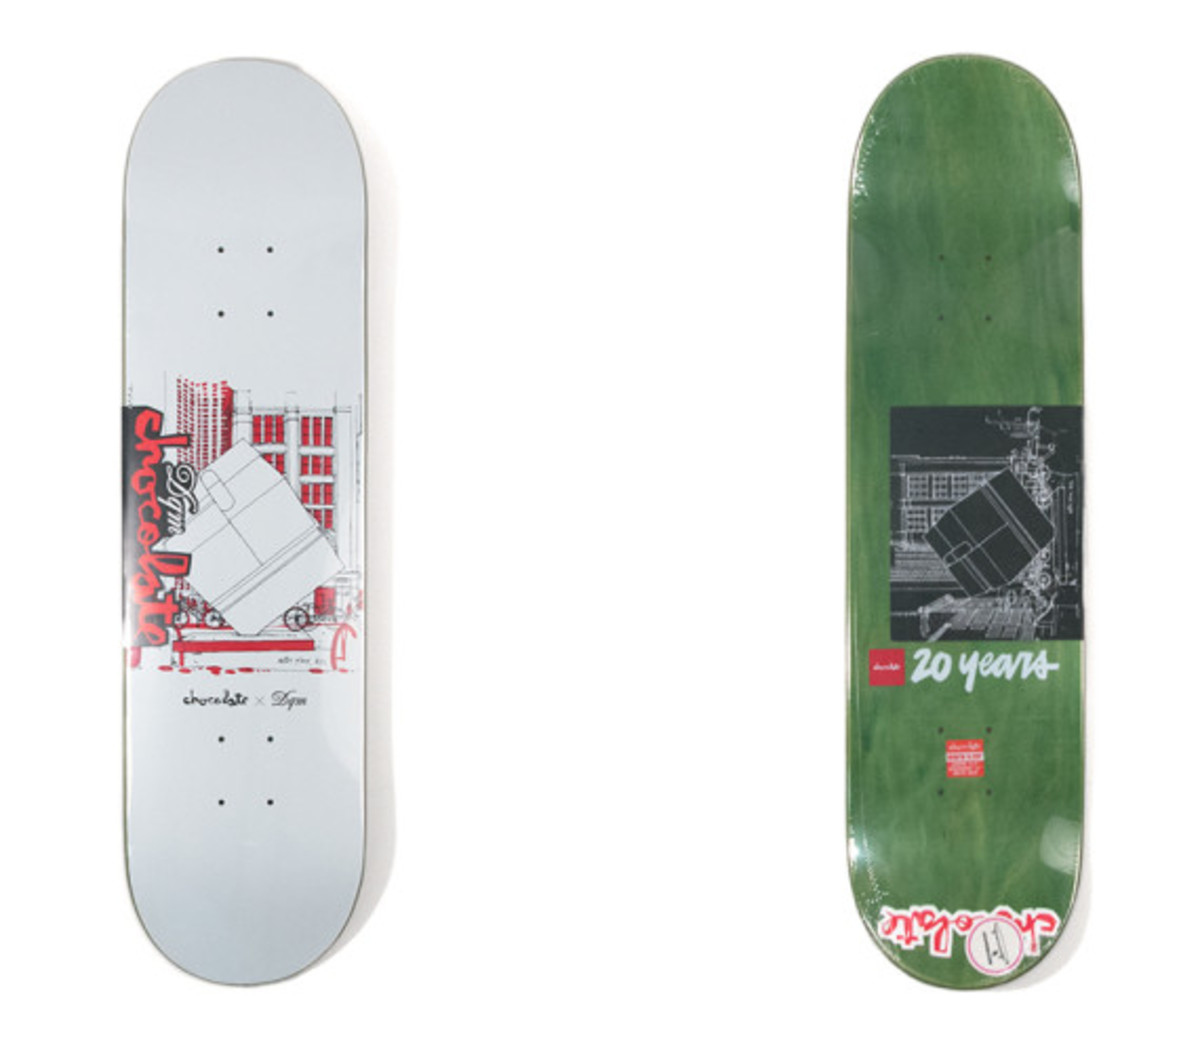 dqm-chocolate-skateboards-capsule-collection-08